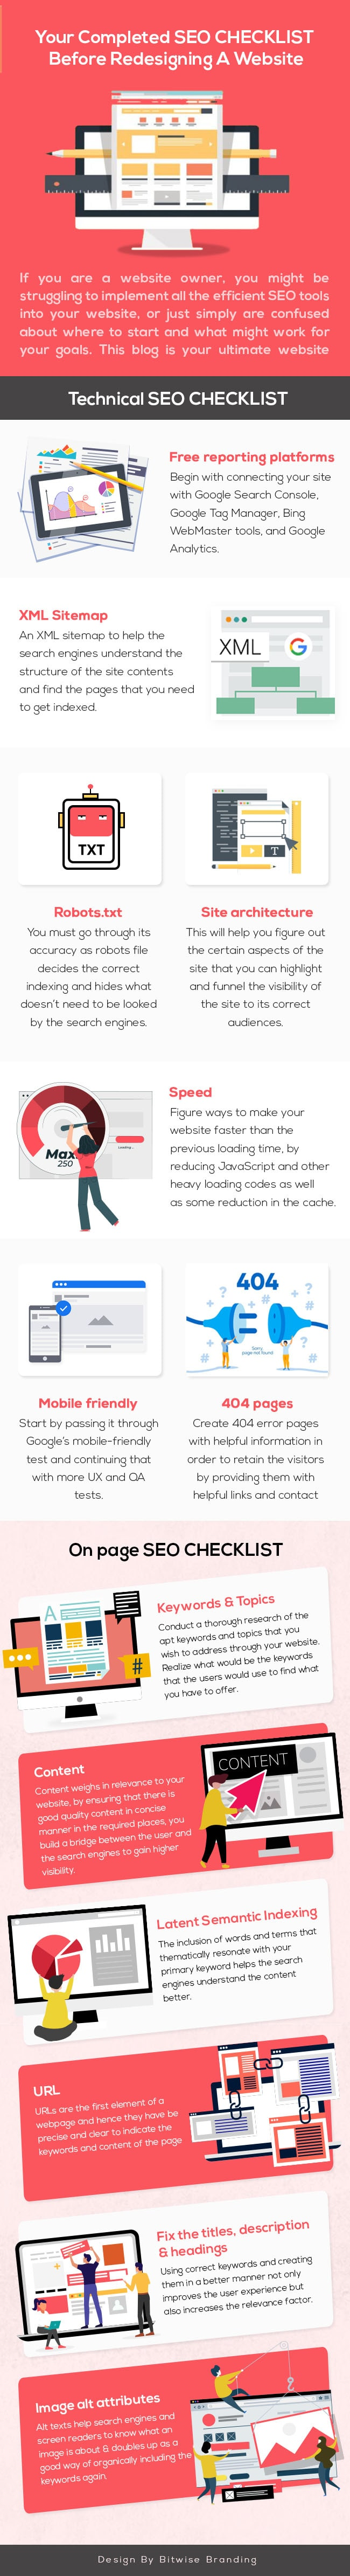 Beginners SEO Tips: Checklist for 13 Step to Improve Your Website SEO - Infographic